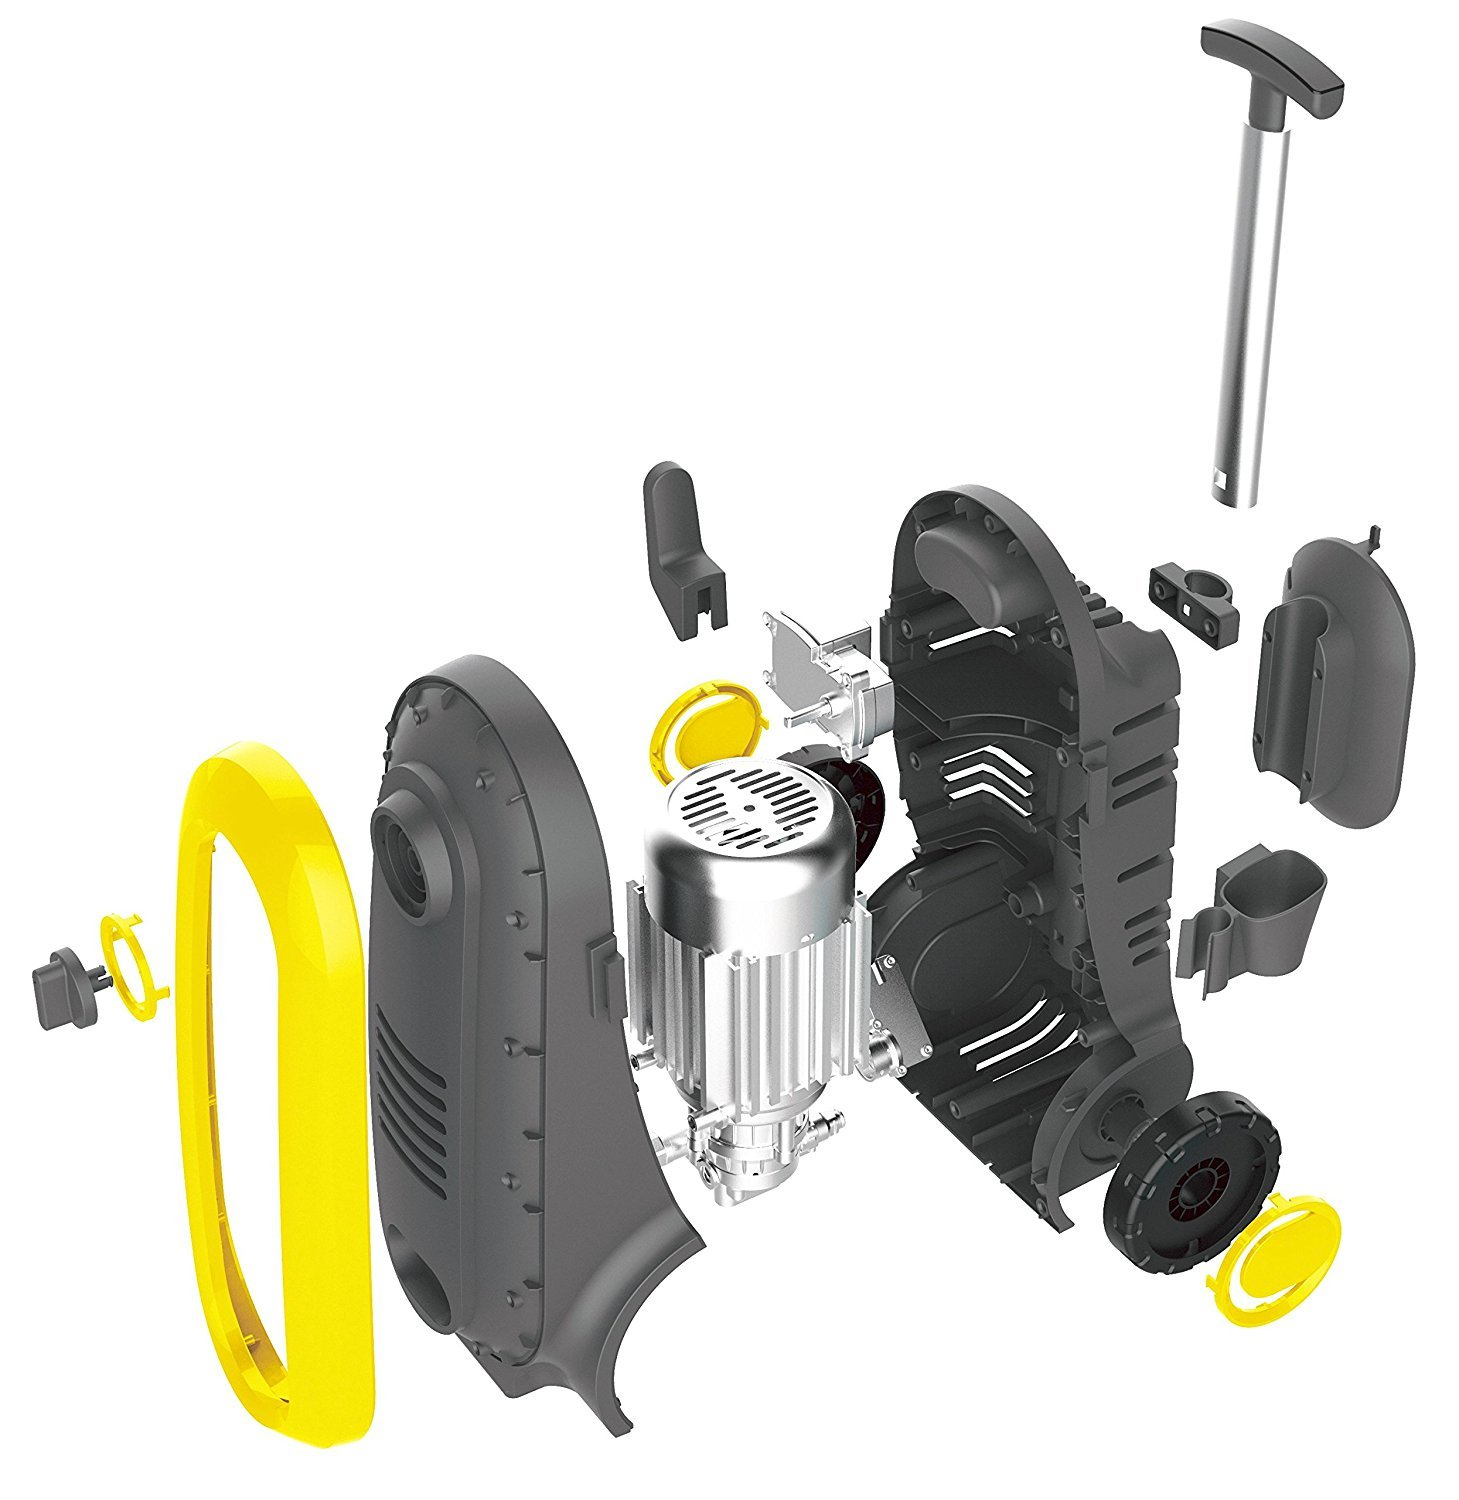 Power Pressure Washer 2300 PSI Electric | Brushless Induction Technology | The Next Generation of Pressure Washer | 3X More Lifespan | Ultra Low Sound | New Design | Power Efficient (Yellow) by Power Products USA (Image #5)